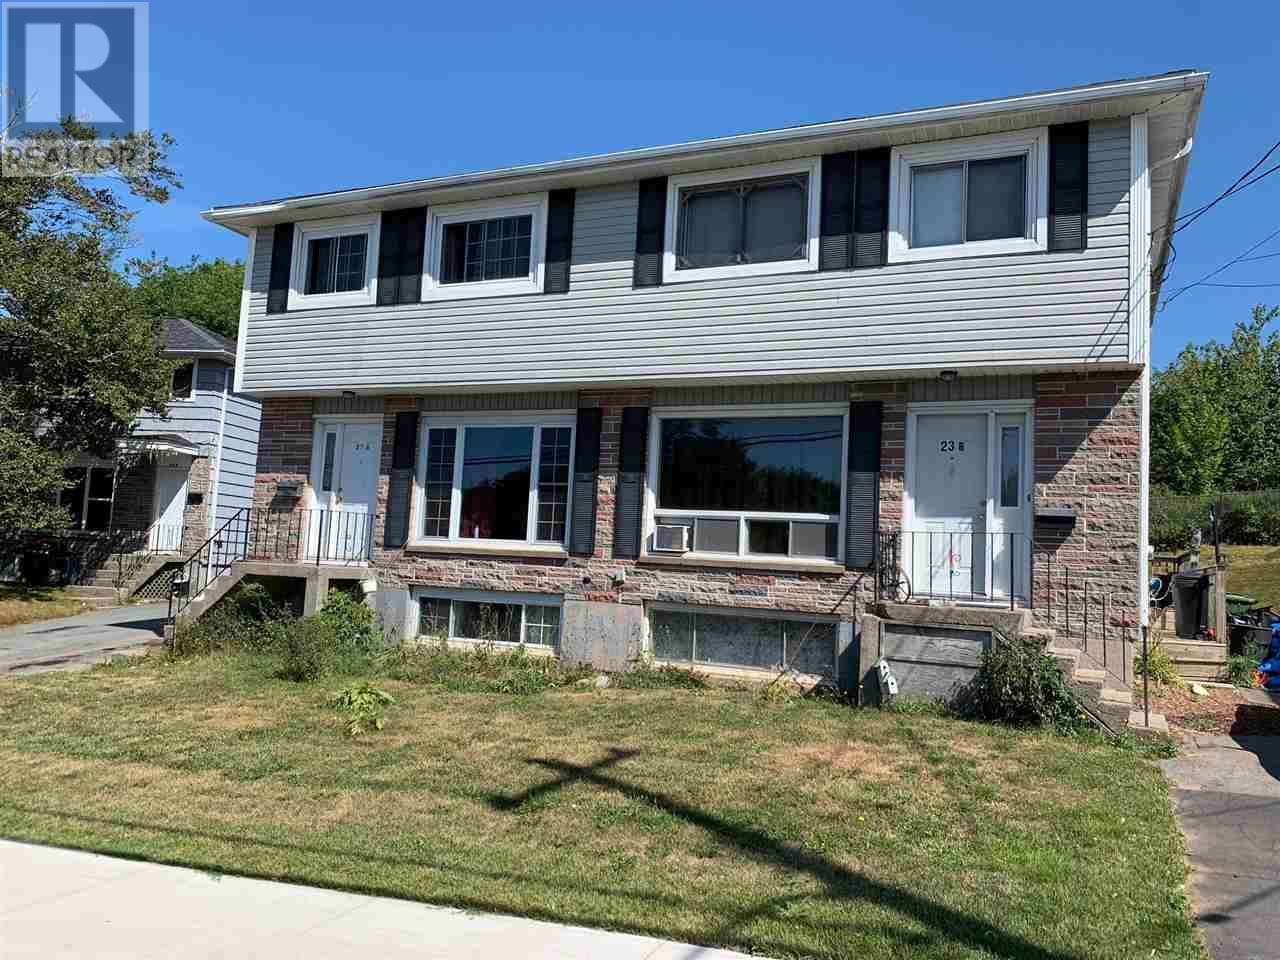 Townhouse for sale at 23 A/b Kennedy Dr Dartmouth Nova Scotia - MLS: 201921491